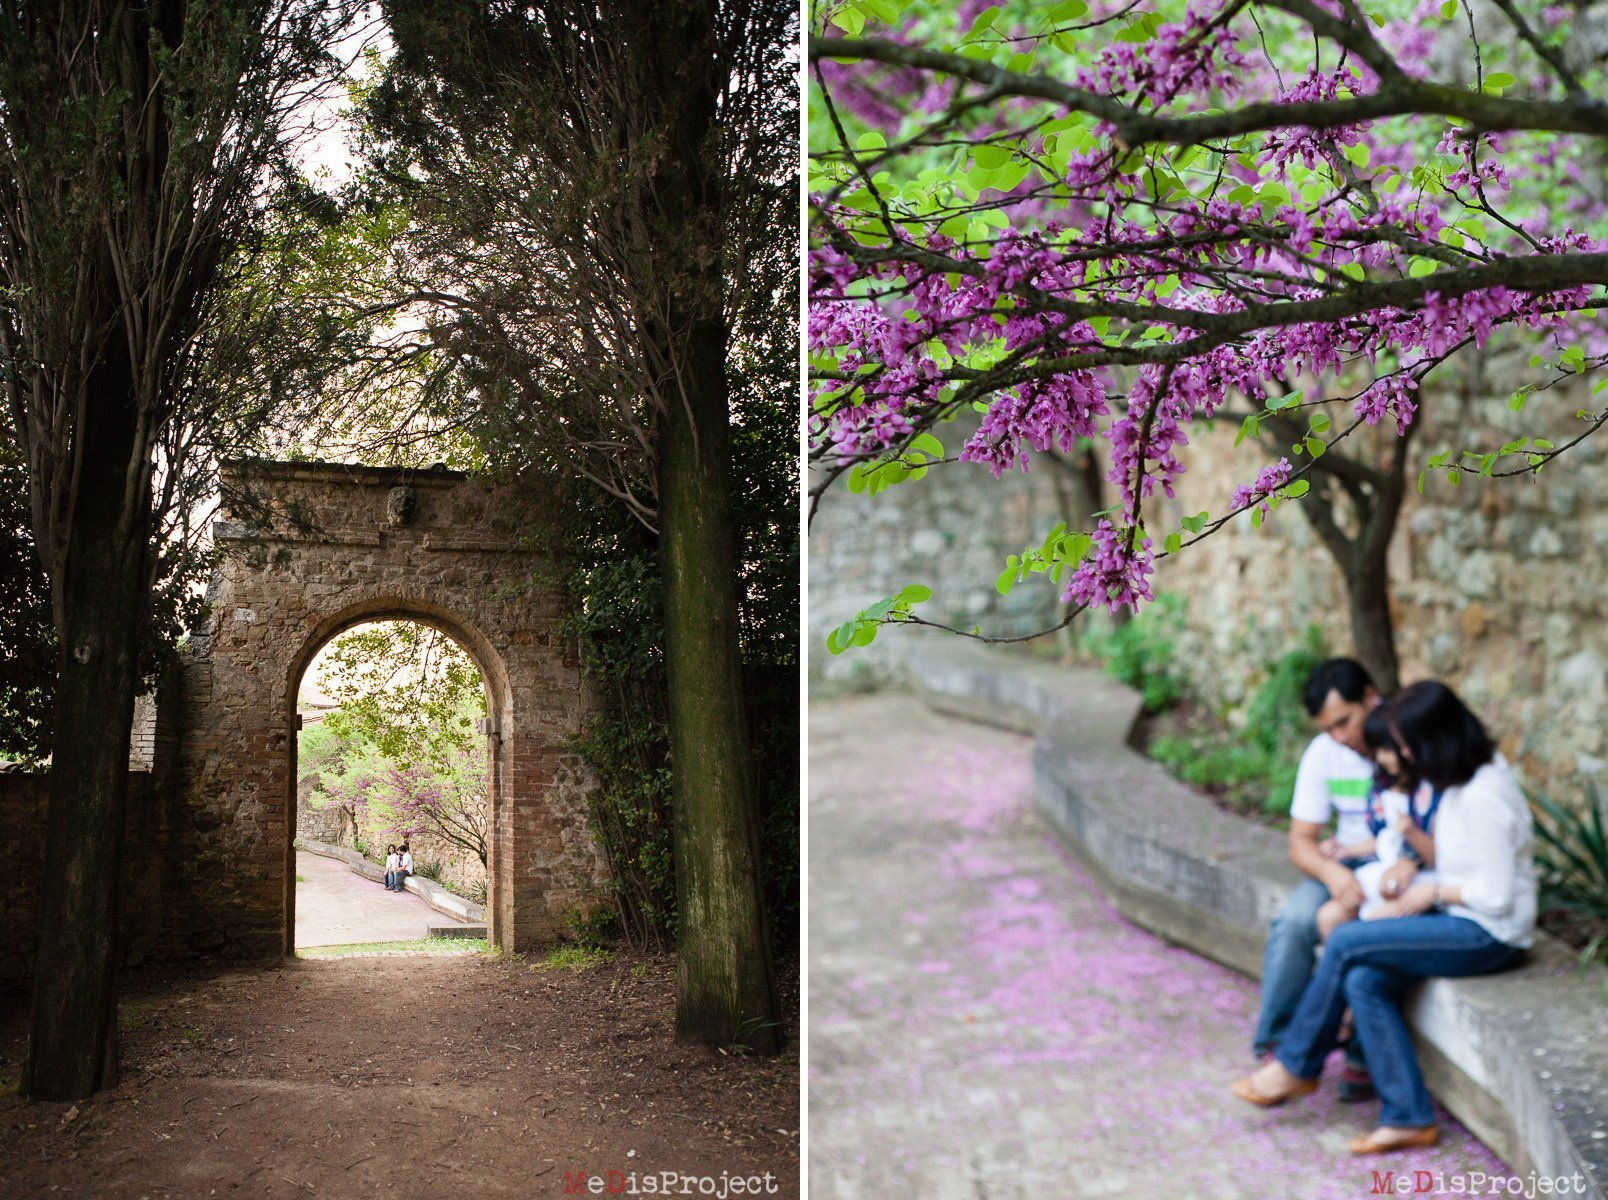 medisproject_family_photography_tuscany_027